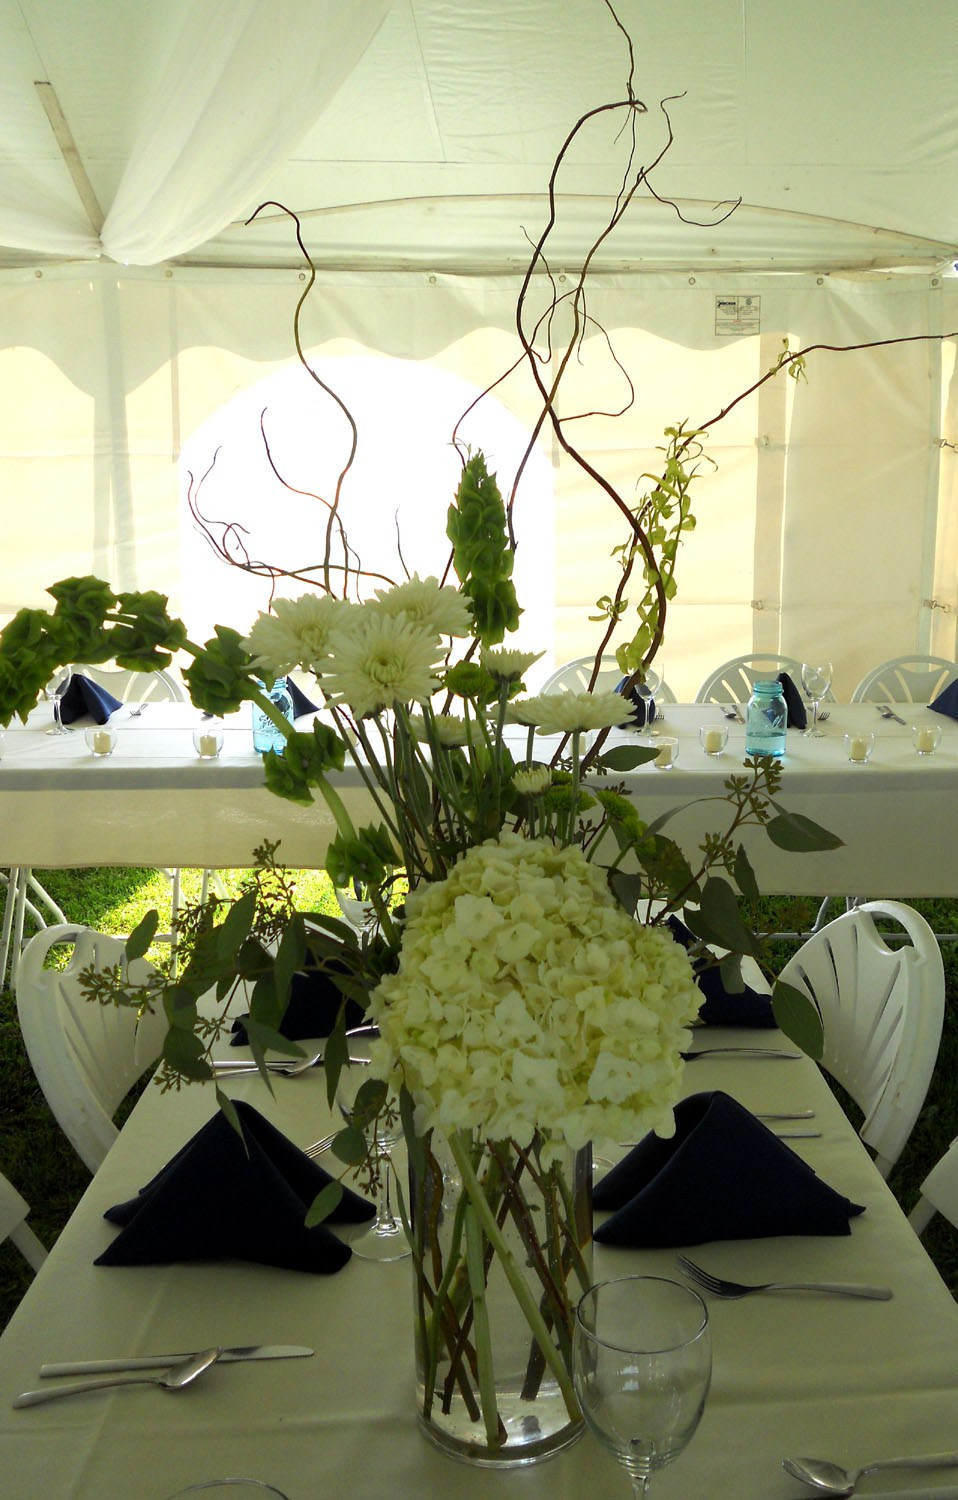 Large Wedding Vases Of Flower Arrangements for Church Page 2 Floral Arrangement Inspiration with Wedding Vases Inspirational Brickroomh Vases Vase Rentals Nyc I 0d Scheme Renting Wedding Design